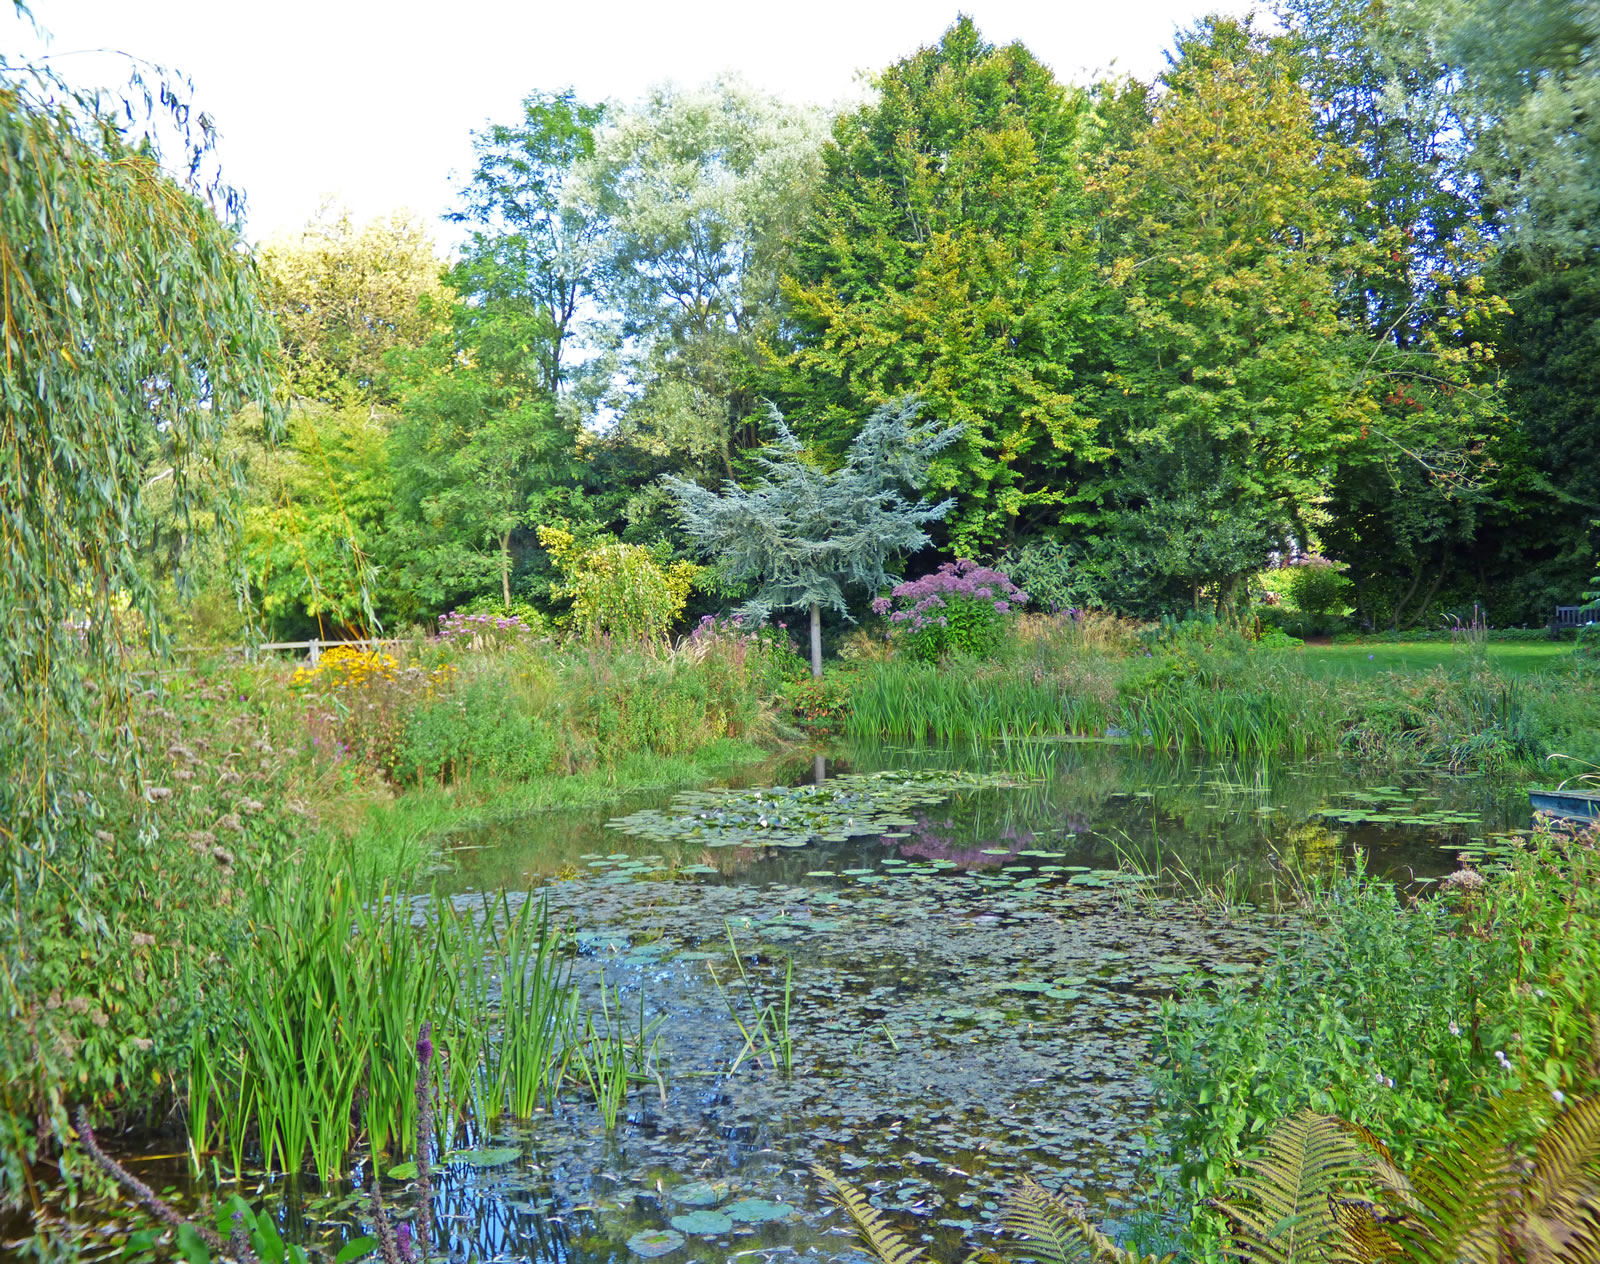 Scenic Gooderstone Water Garden With Heavenly Another Beautiful View Over One Of The  Ponds With Appealing Caths Garden Plants Also Gardening At Home In Addition Decorative Gardens And Cadbury Garden And Leisure As Well As Covent Garden Indian Restaurant Additionally Mundells Welwyn Garden City From Tournorfolkcouk With   Heavenly Gooderstone Water Garden With Appealing Another Beautiful View Over One Of The  Ponds And Scenic Caths Garden Plants Also Gardening At Home In Addition Decorative Gardens From Tournorfolkcouk